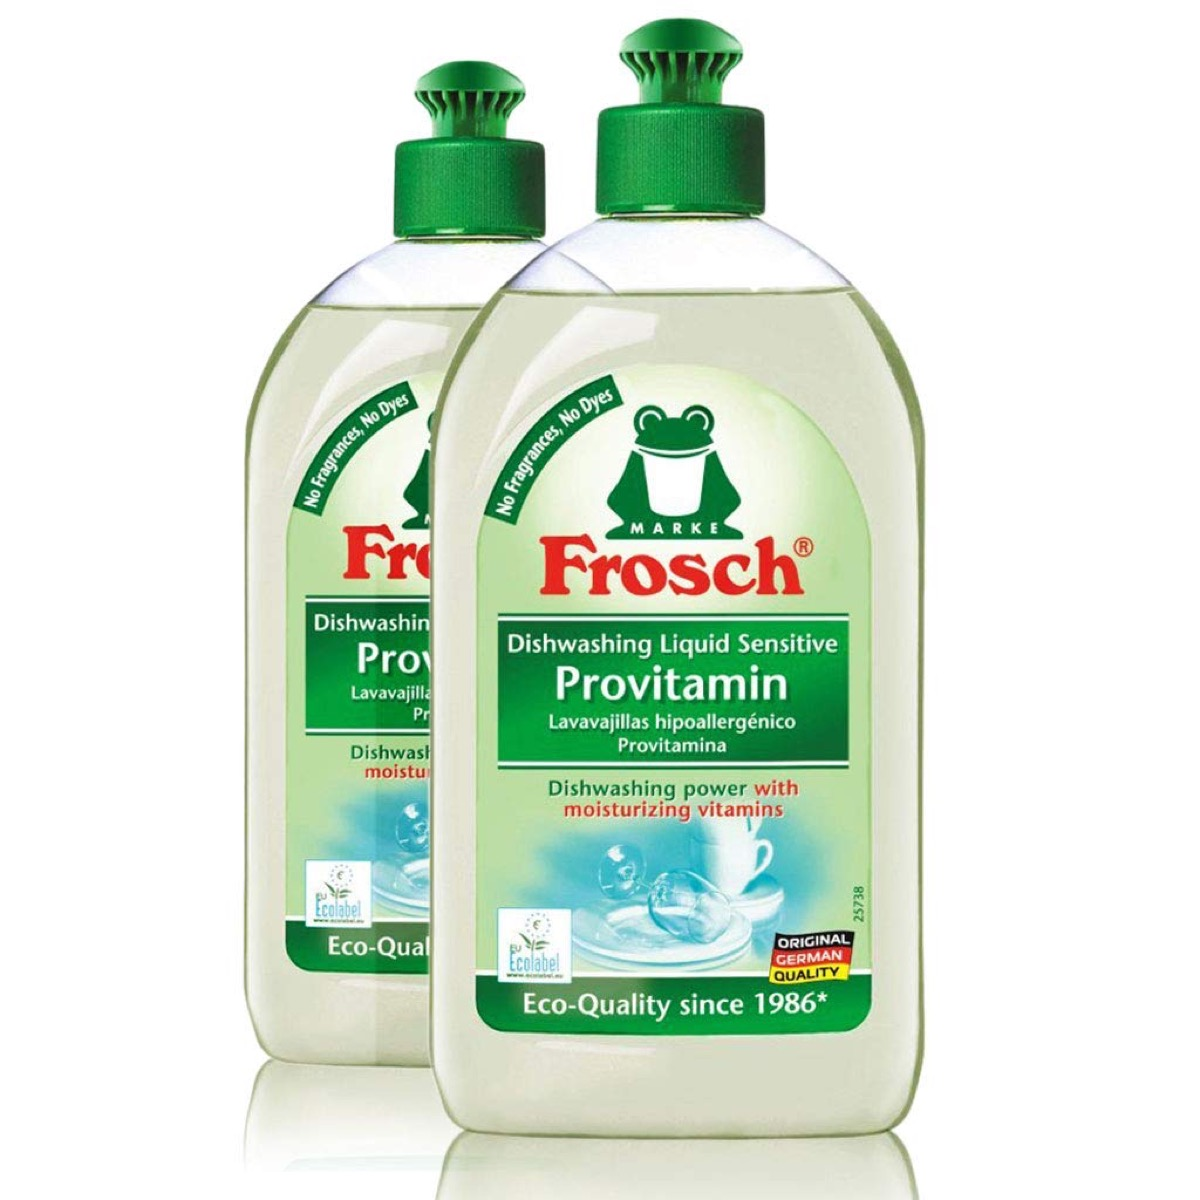 two bottles of dish soap with green tops, earth friendly cleaning products